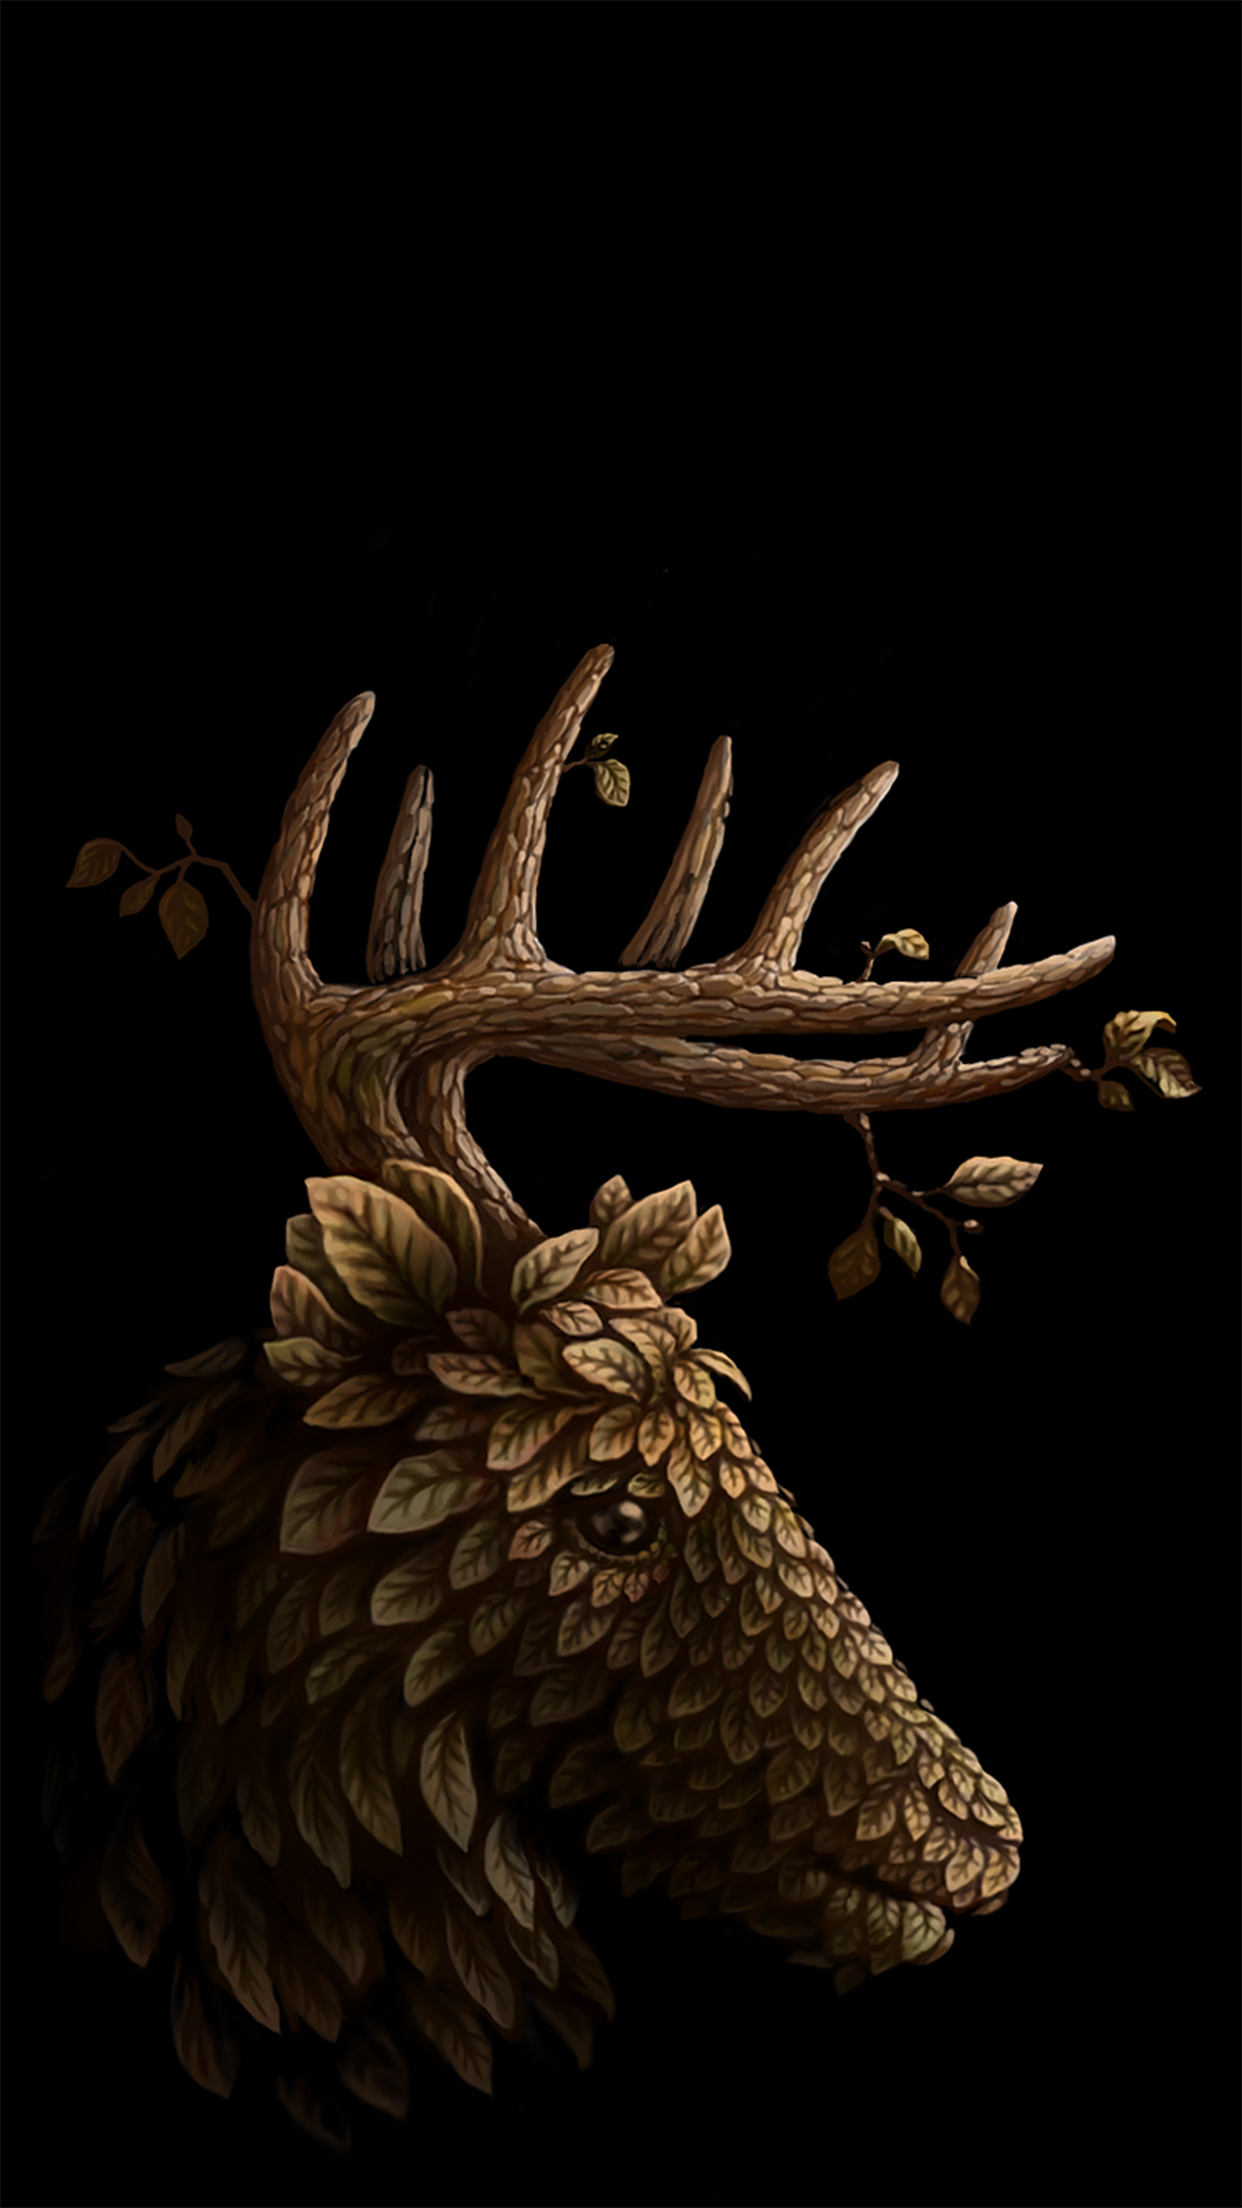 deer wallpaper for iphone x 8 7 6 free download on 3wallpapers